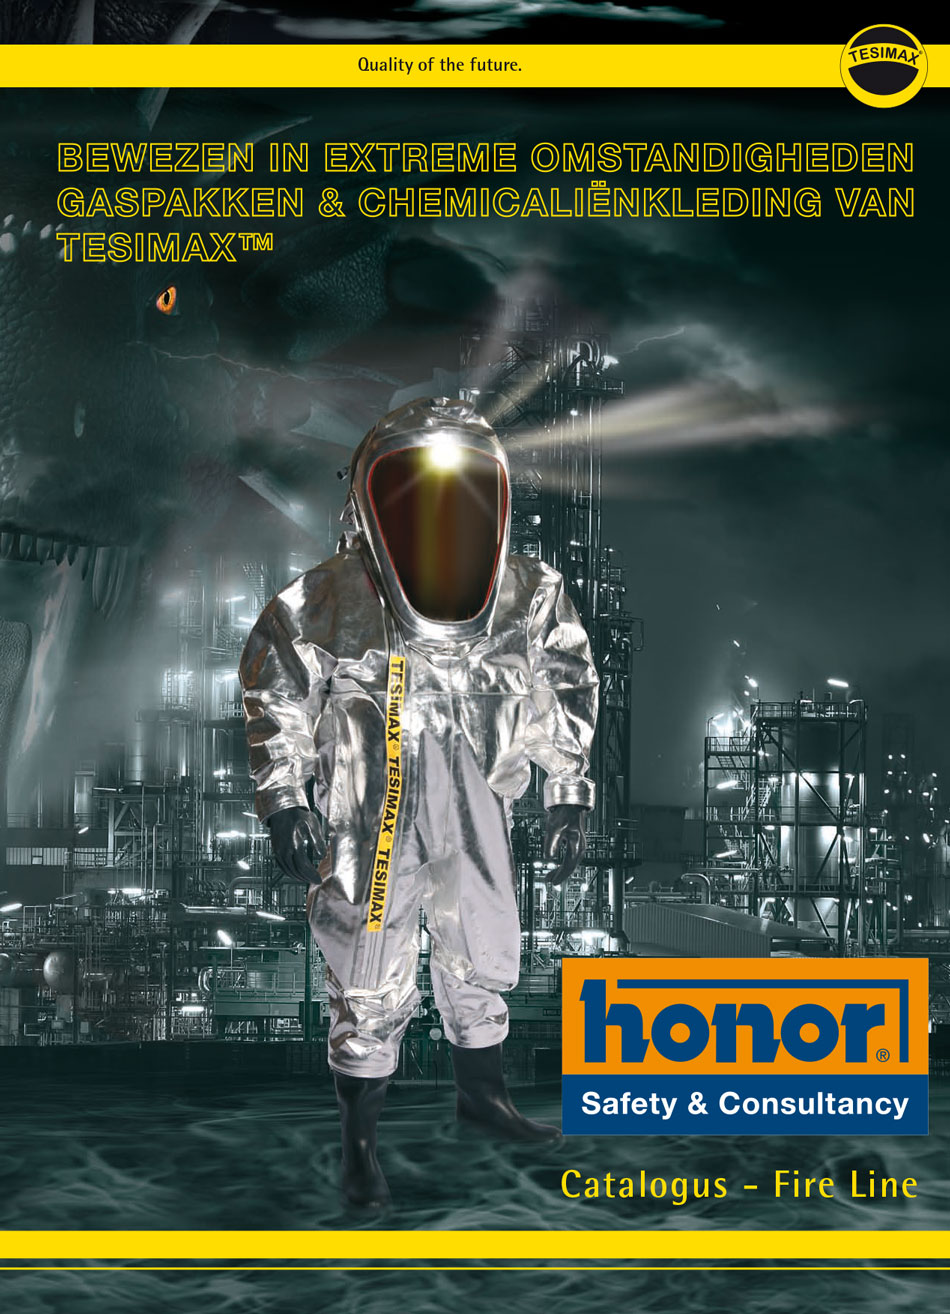 Gaspakken-en-chemicalienkleding-Tesimax---HONOR-Safety-&-Consultancy-catalogus-cover